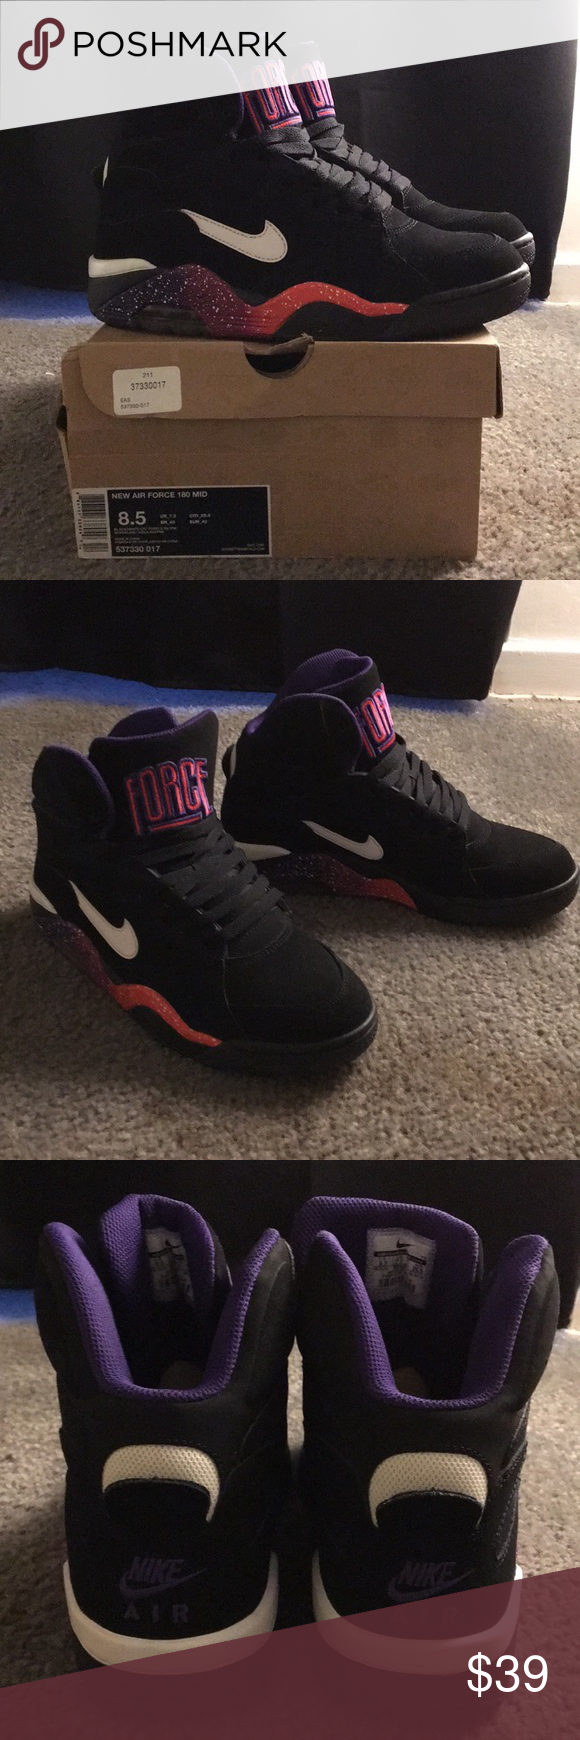 "Nike Air Force 180 Mid ""Phoenix Suns"" size 8.5us Nike Air"